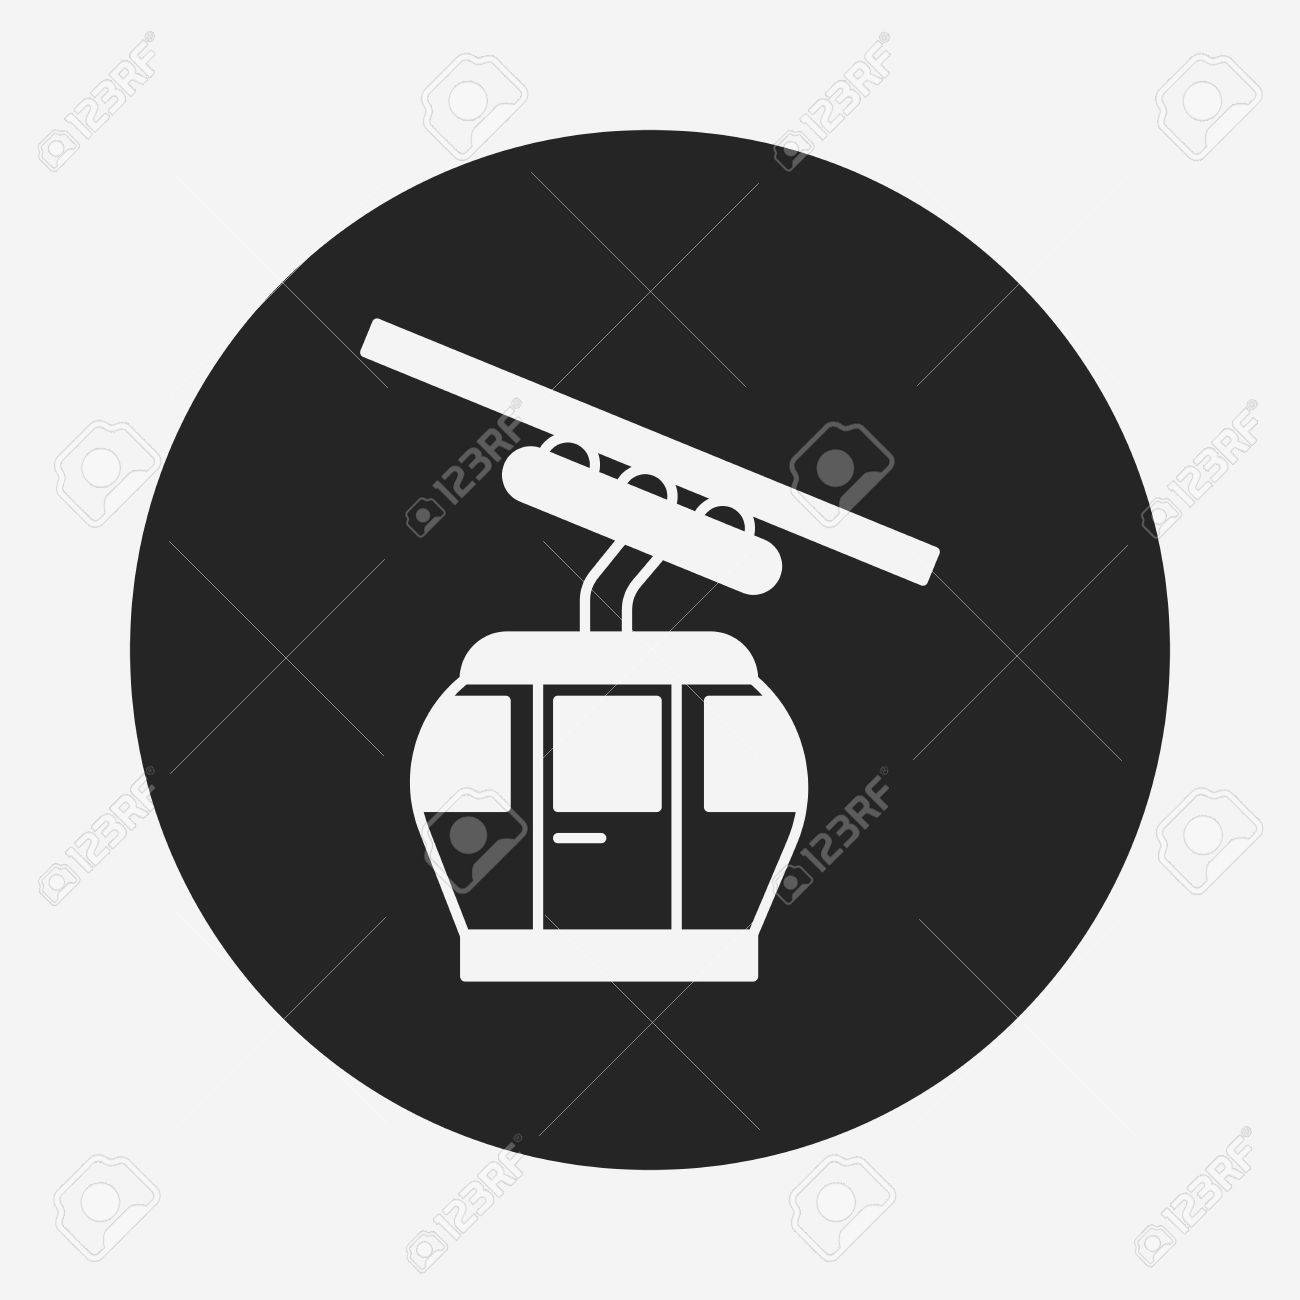 Cable Car Icon Royalty Free Cliparts, Vectors, And Stock ...